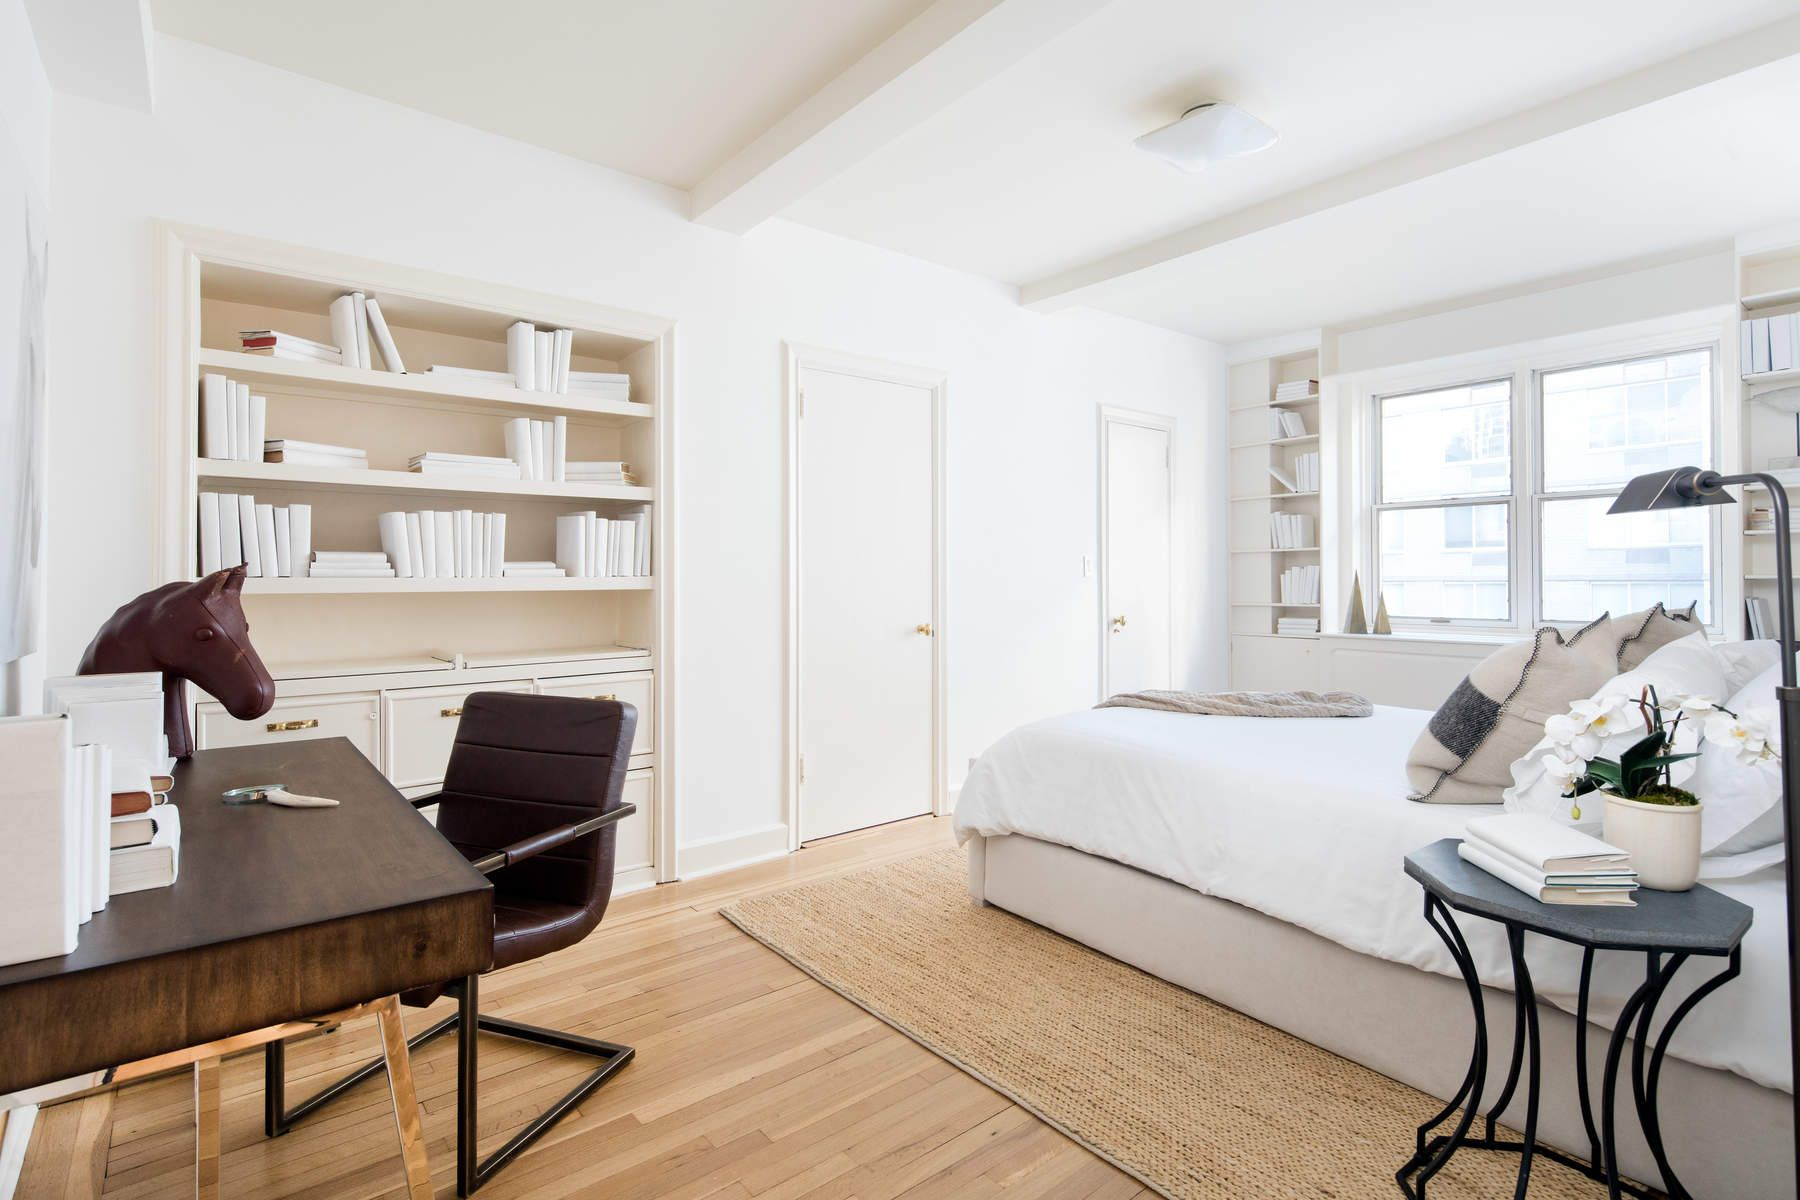 Additional photo for property listing at 350 East 57th Street 14B 350 East 57th Street Apt 14B New York, New York 10022 United States